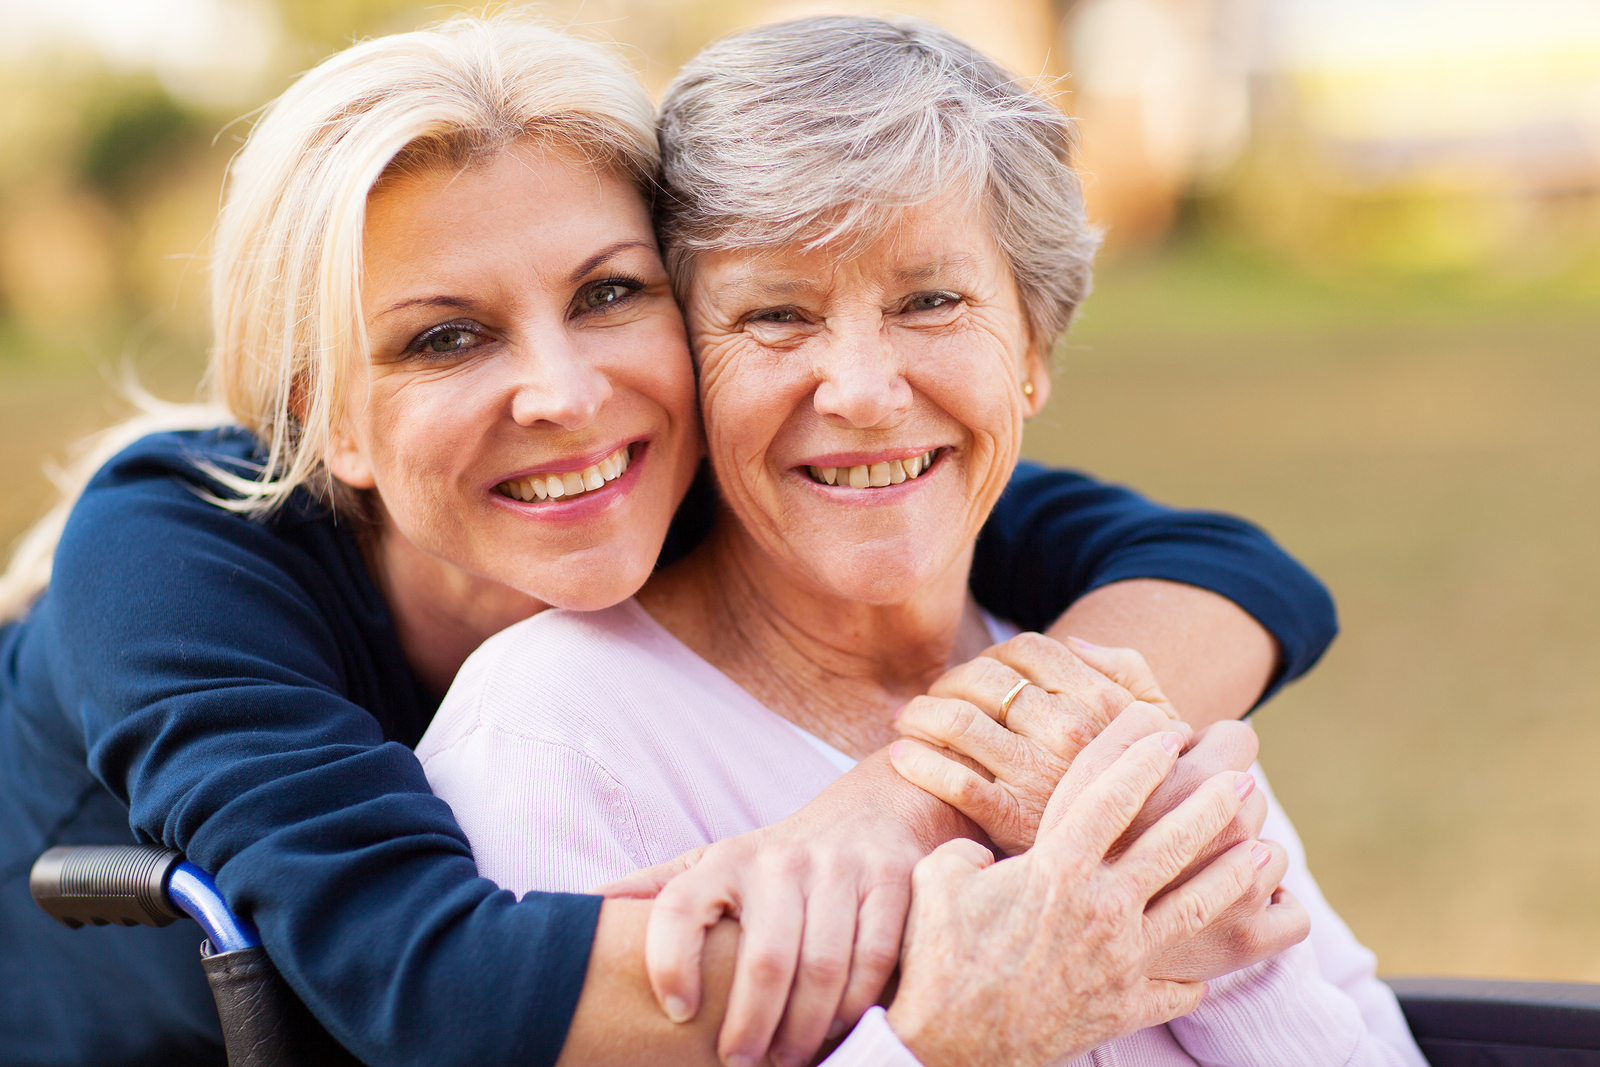 Discussing Assisted Living With An Aging Loved One